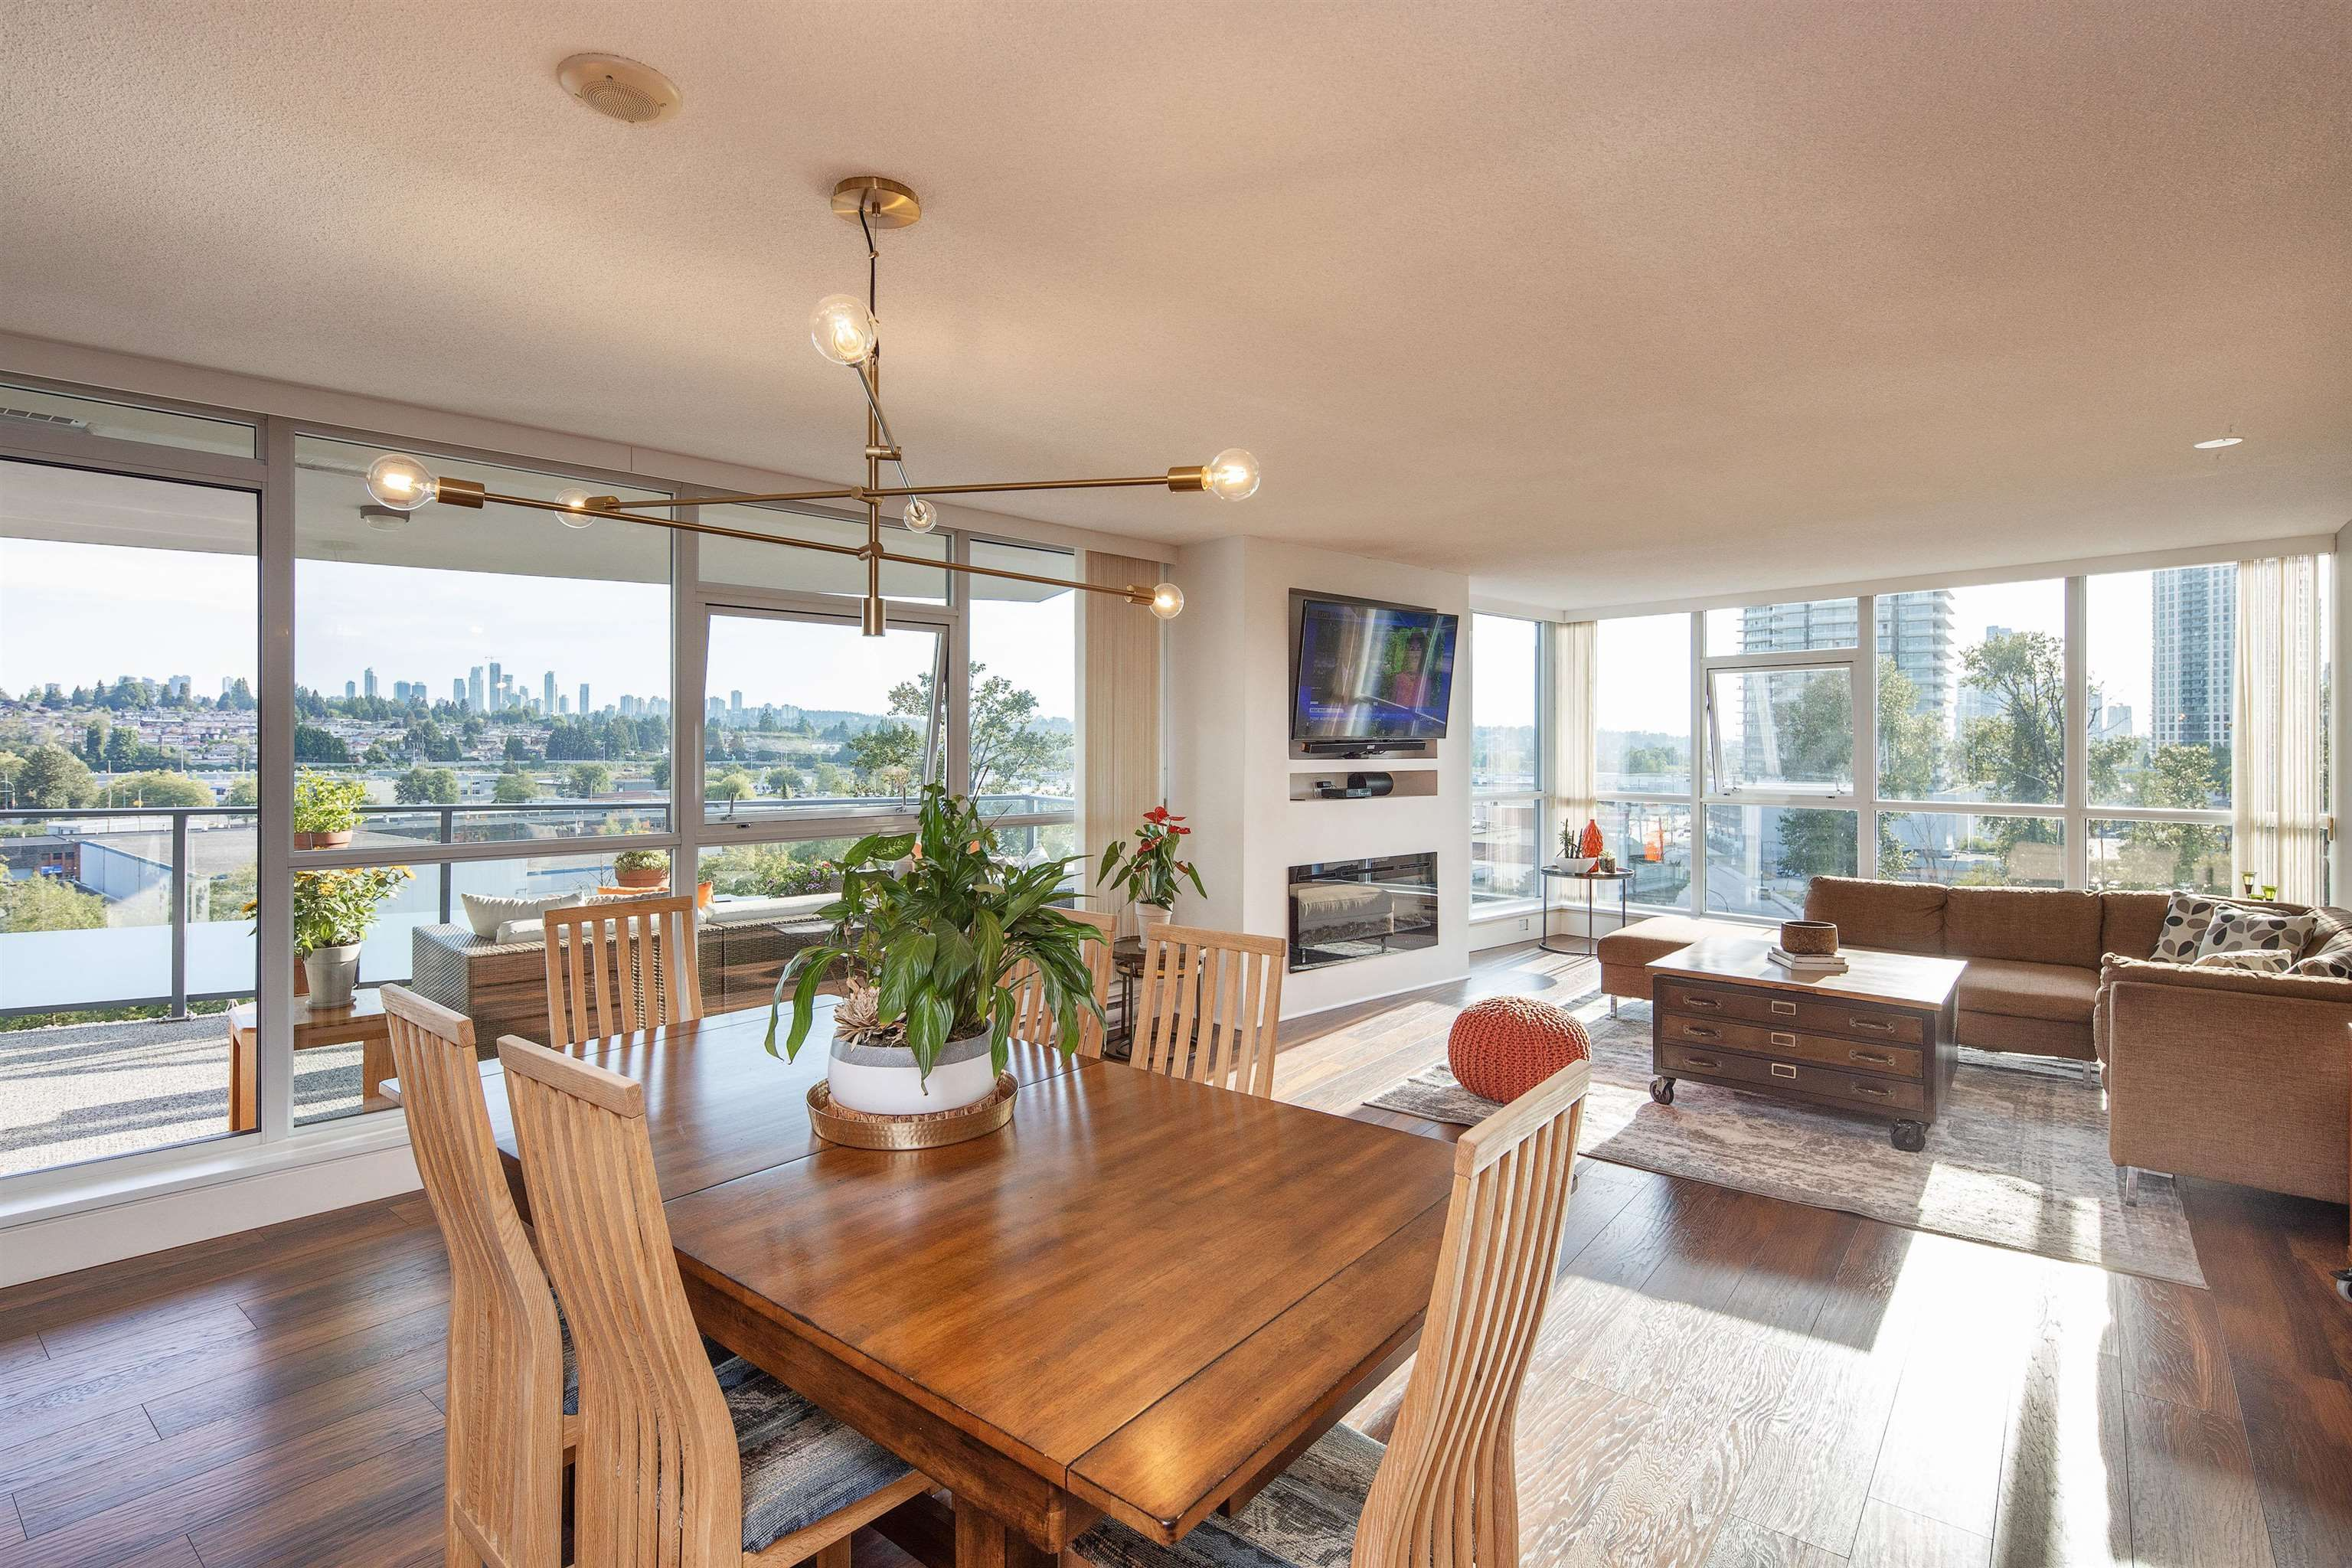 """Main Photo: 805 5611 GORING Street in Burnaby: Central BN Condo for sale in """"Legacy Towers"""" (Burnaby North)  : MLS®# R2609563"""